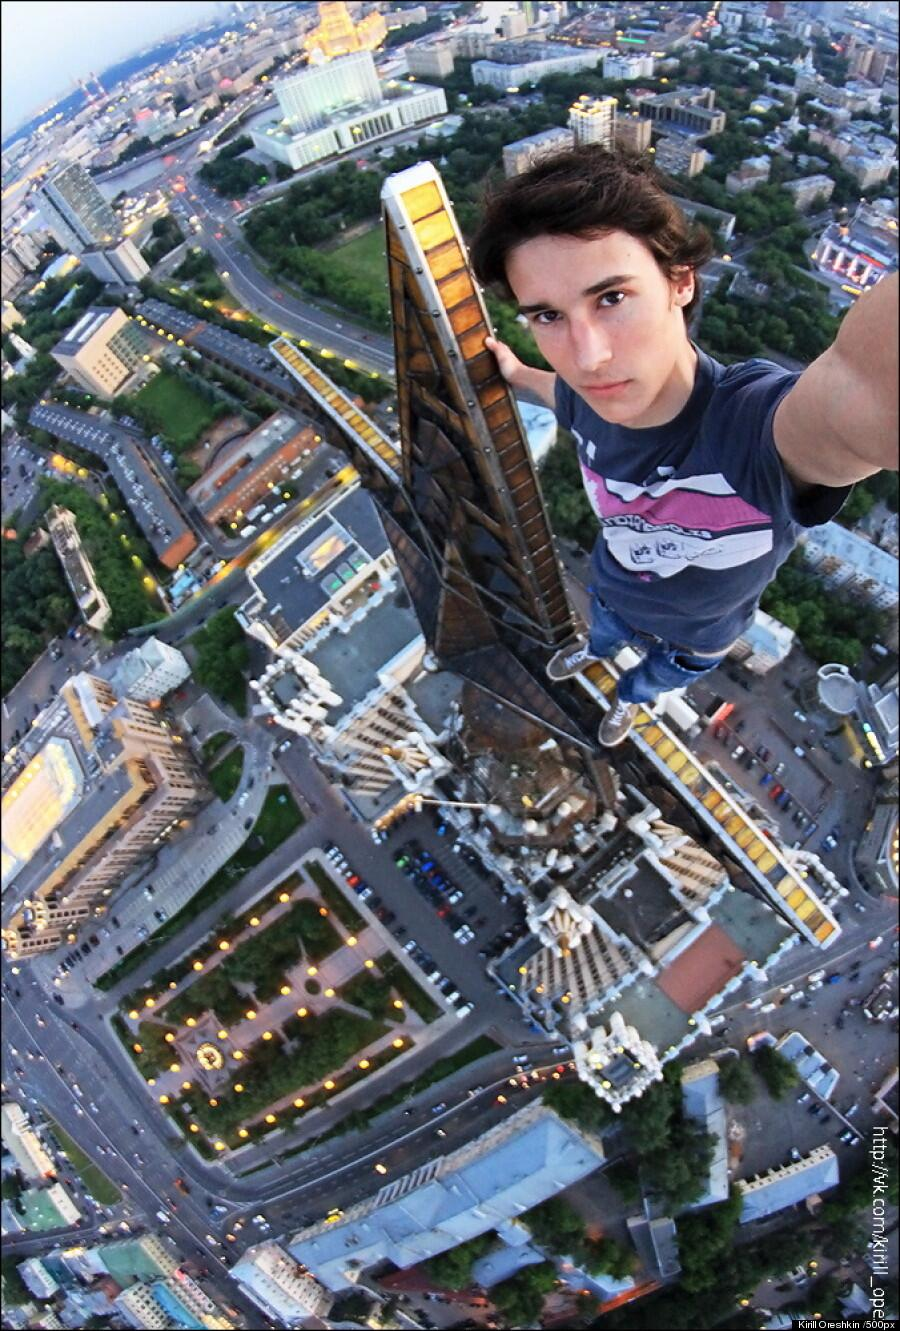 Russian daredevil takes insane selfie dangling from the top of high-rise building: http://t.co/HIZIpTo7Wk